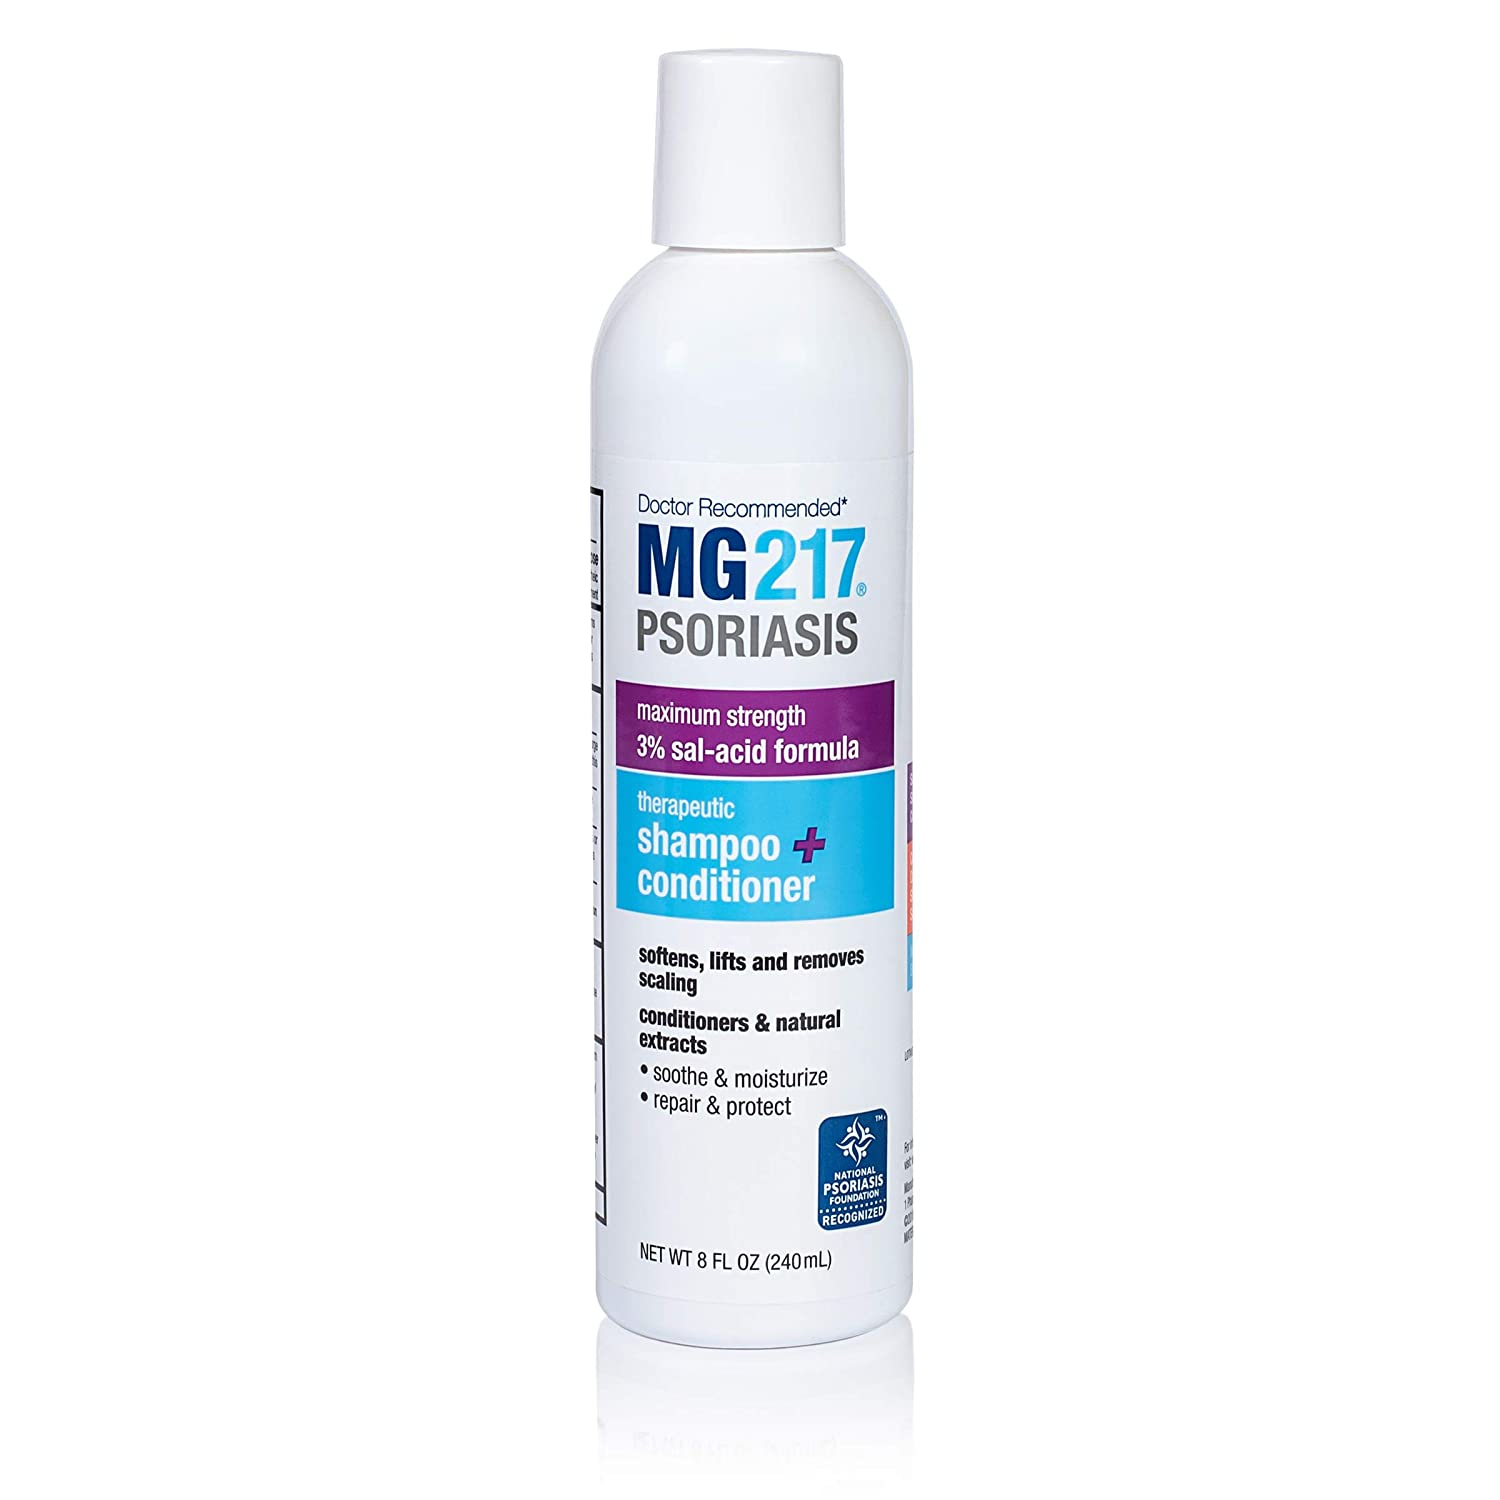 MG 217 Psoriasis best dry scalp treatment. Also great for treating seborrheic dermatitis and scalp psoriasis